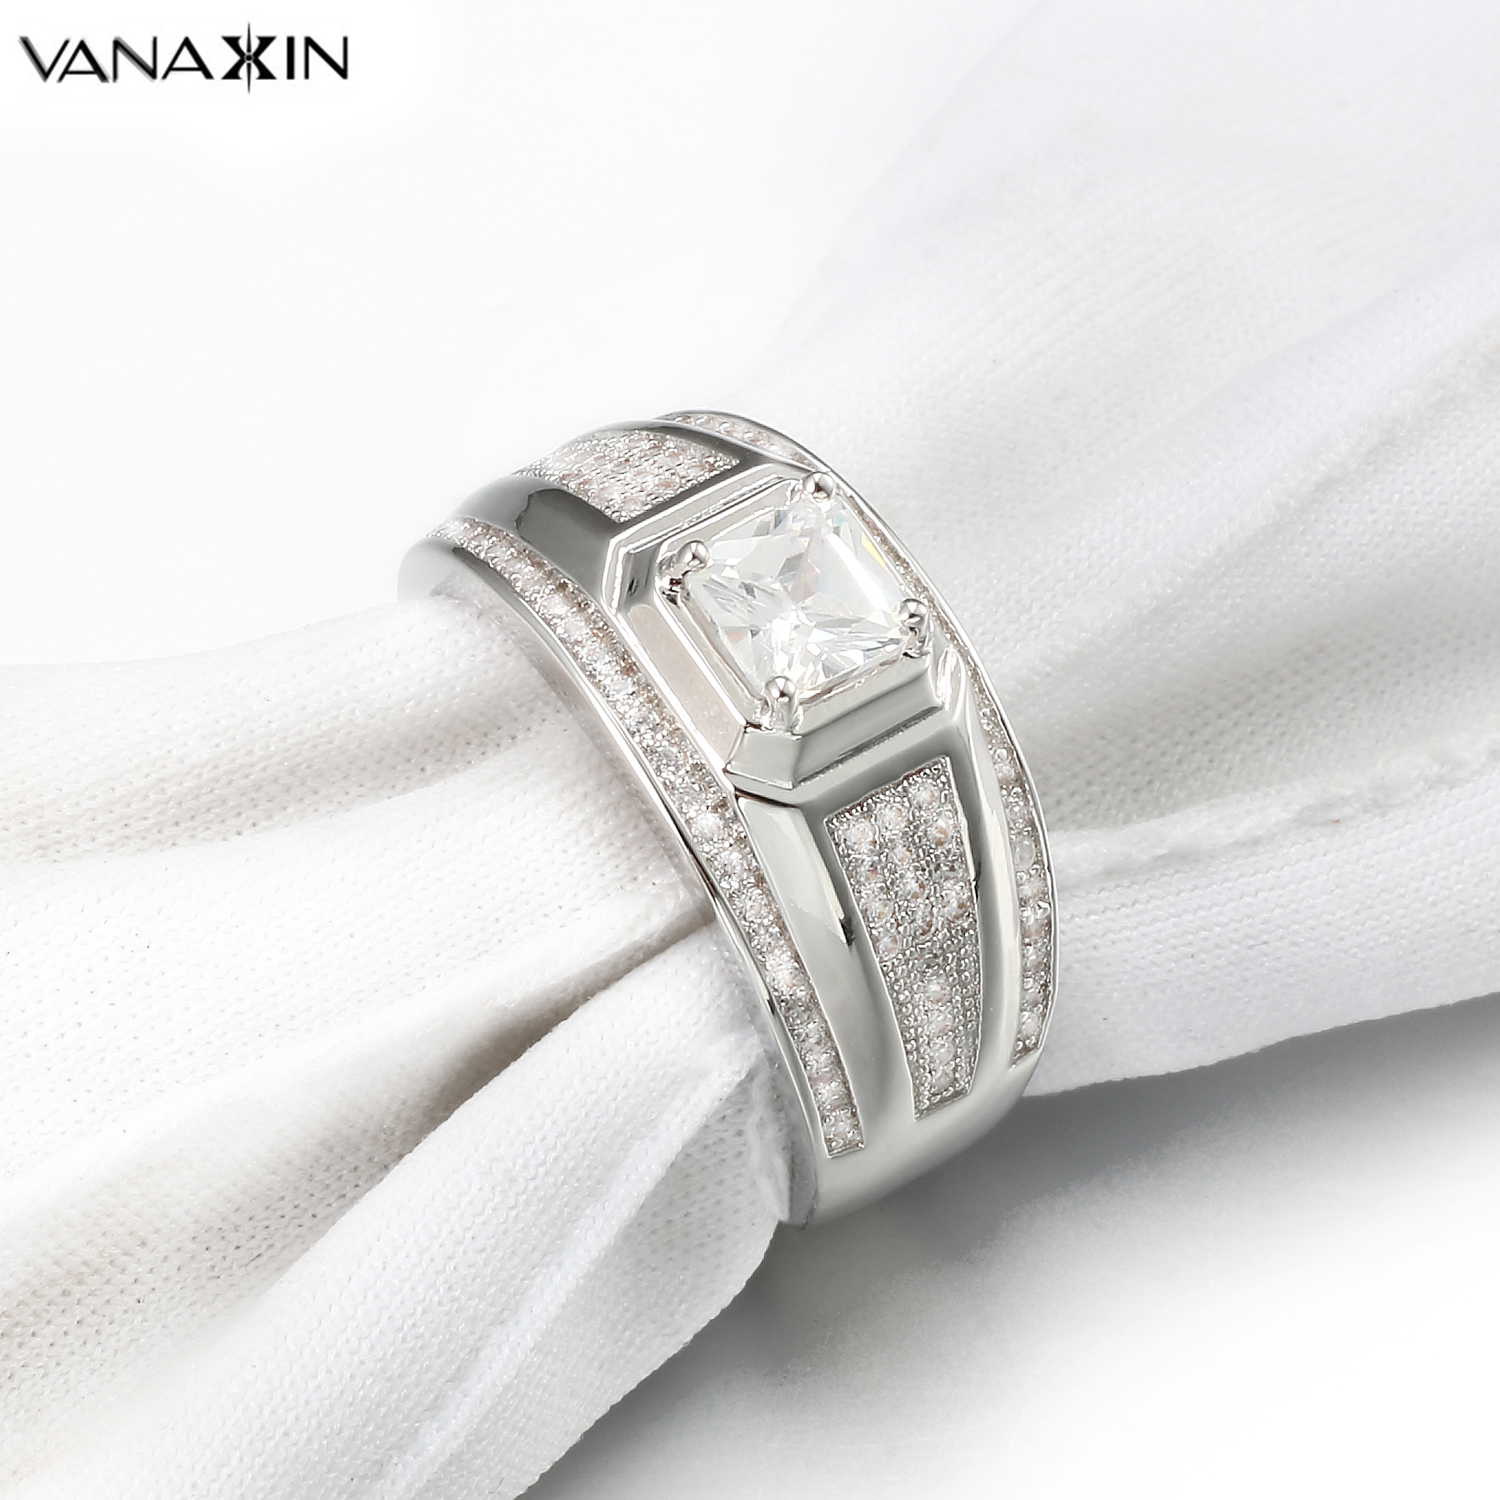 VANAXIN 925 Sterling Silver Ring For Women Wedding Engagement Shiny AAA Cubic Zircons Gift For Wife Fine Jewelry 925 Gift Box